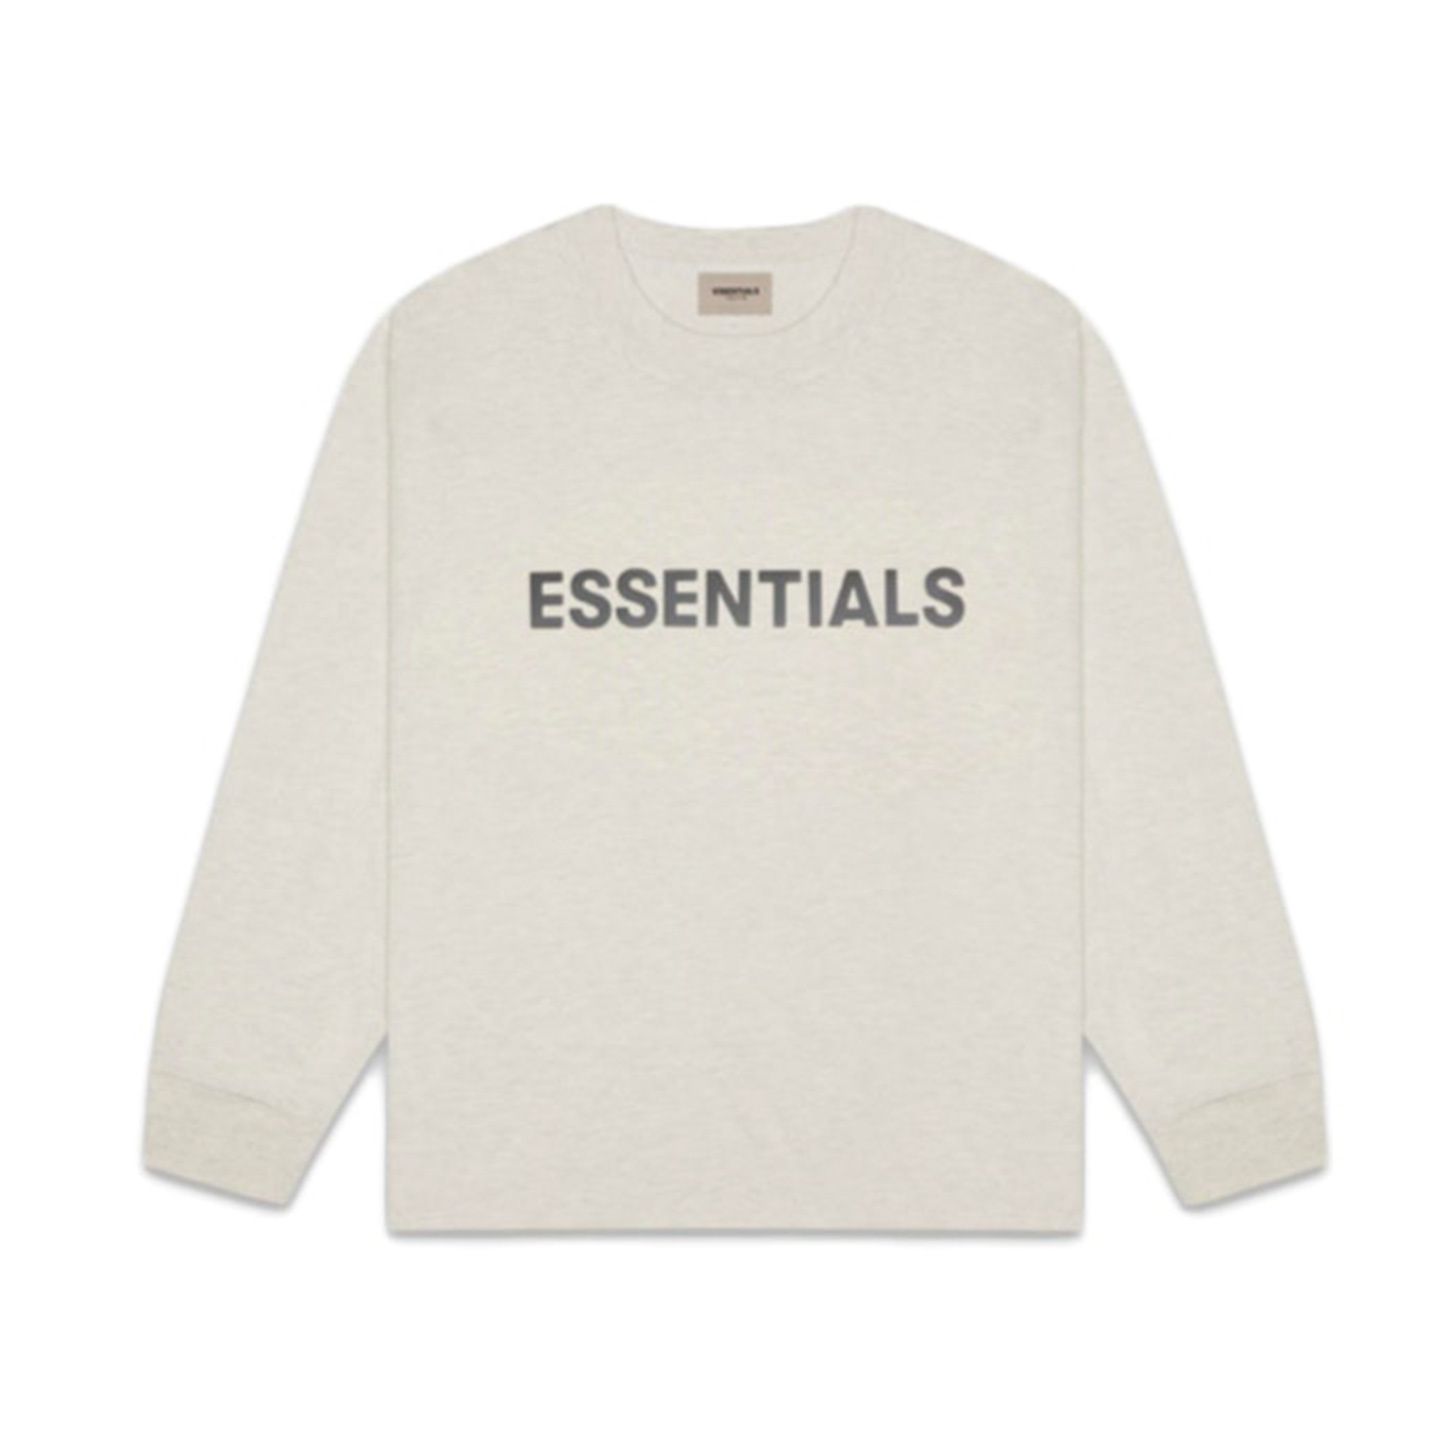 FEAR OF GOD ESSENTIALS 3D Silicon Applique Boxy Long Sleeve T-Shirt Oatmeal Heather 20SS